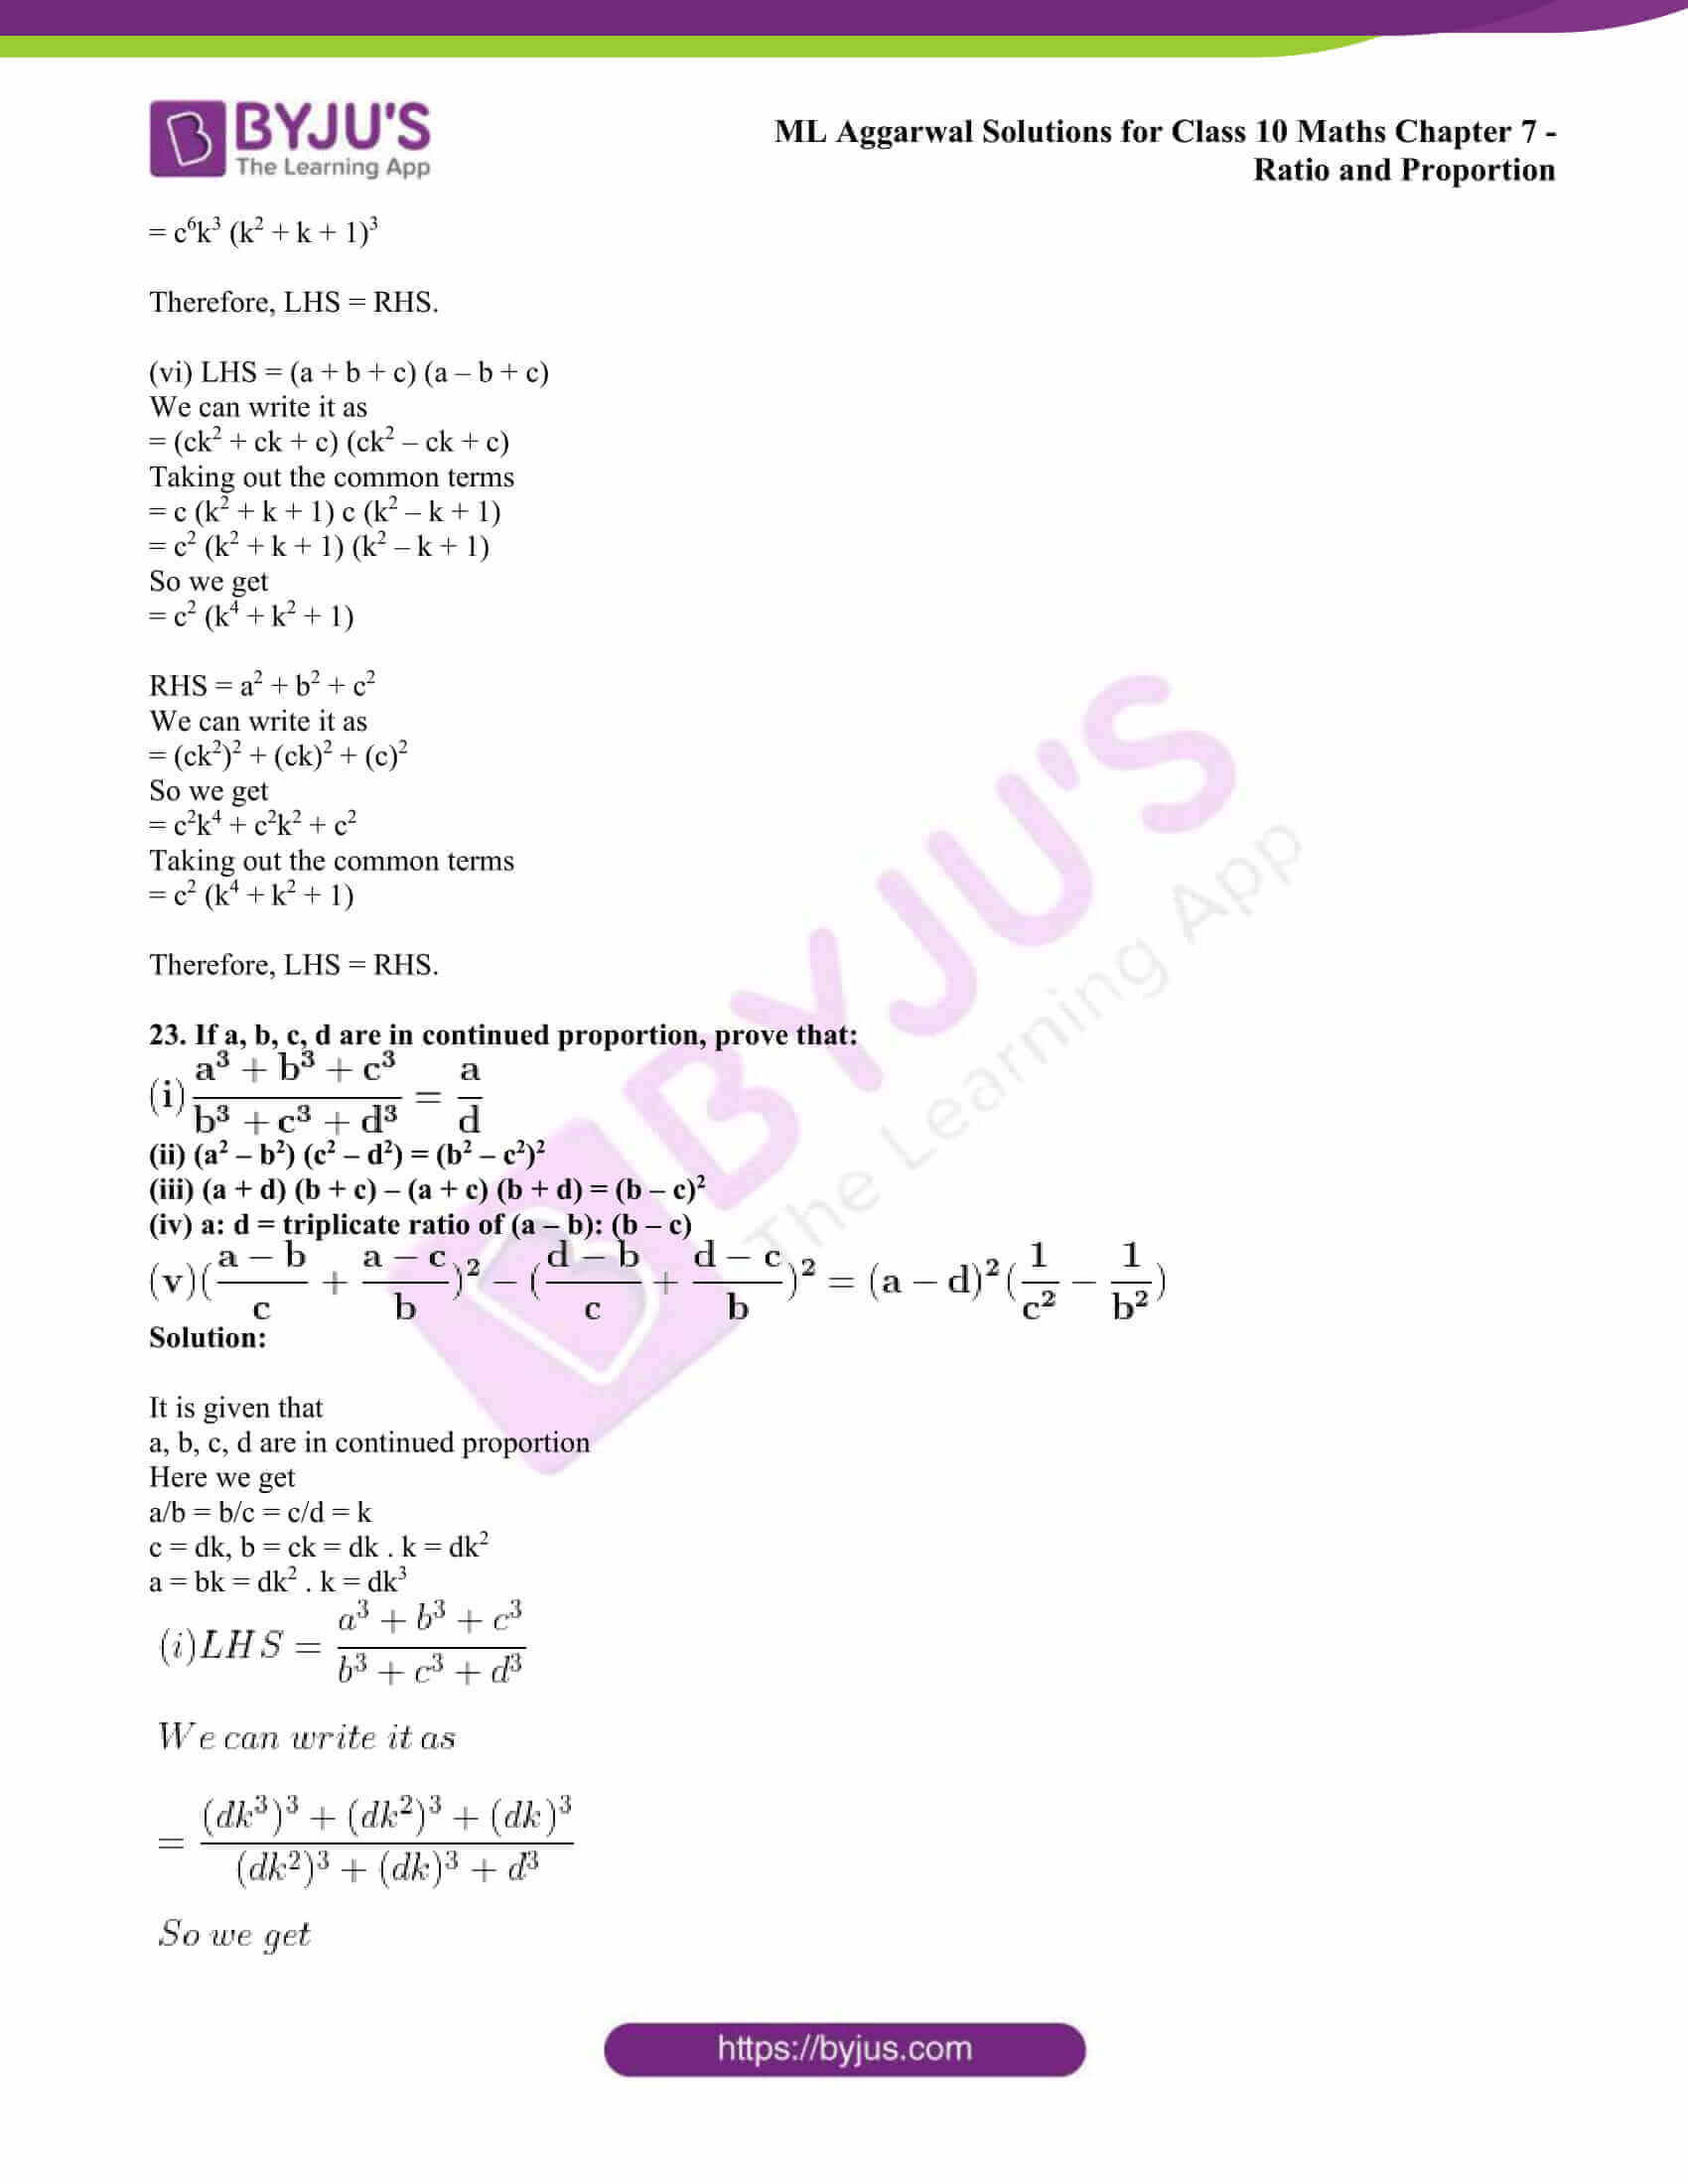 ml aggarwal solutions class 10 maths chapter 7 42